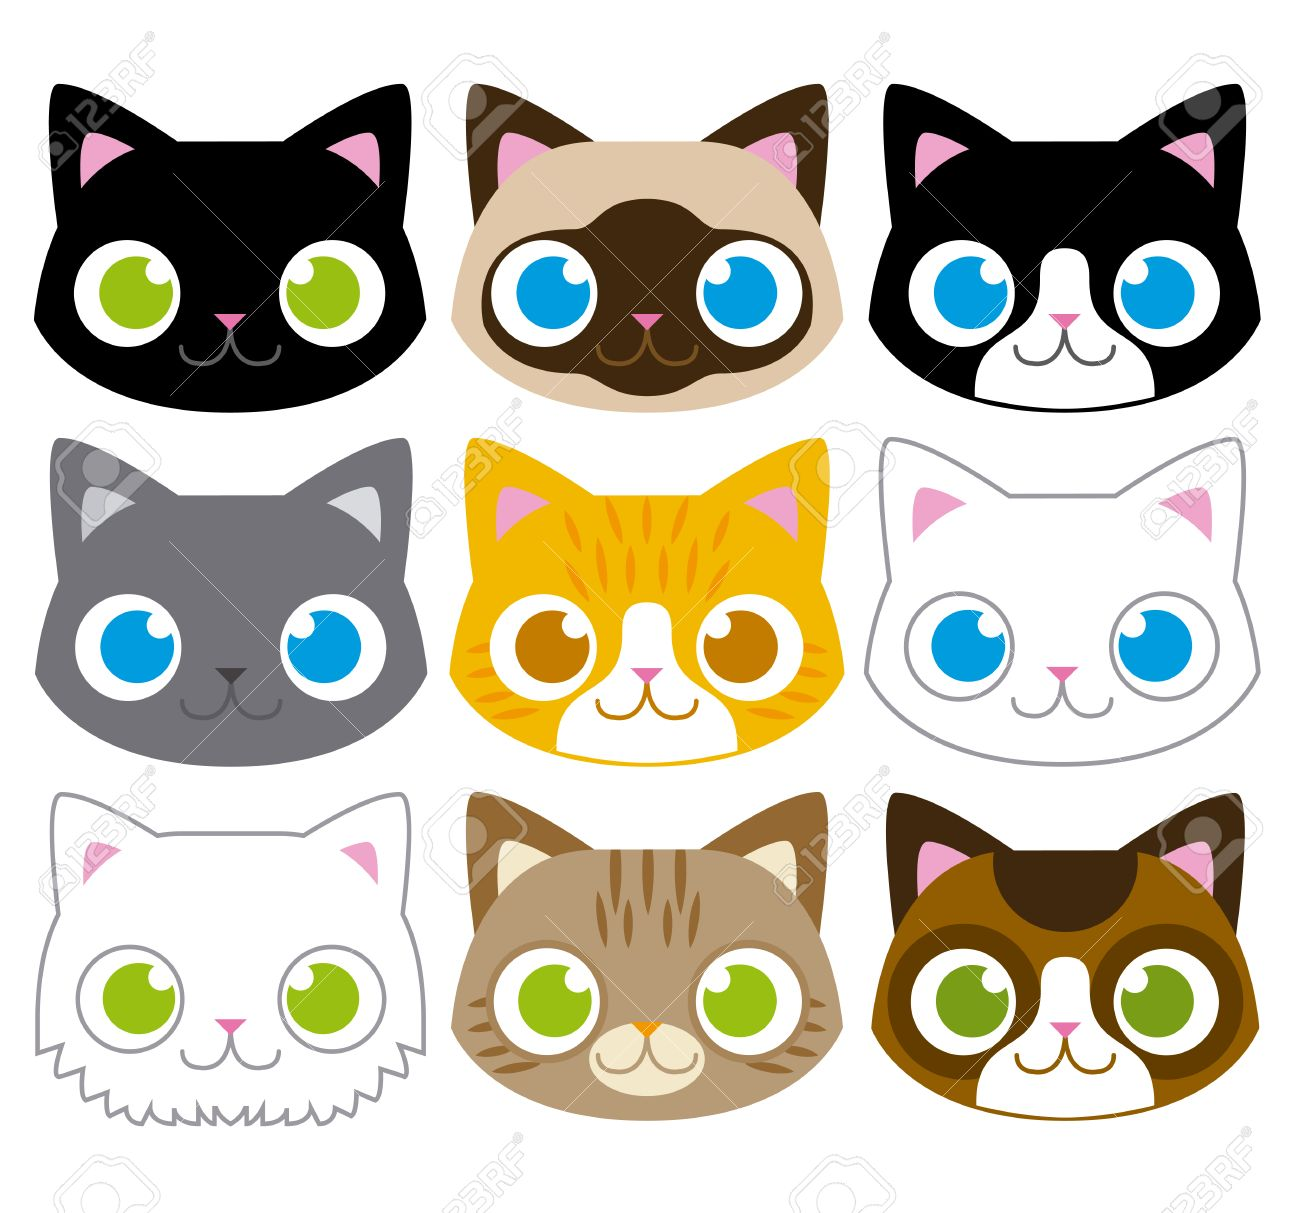 Vector Set Of Different Adorable Cartoon Cats Faces - 30333812